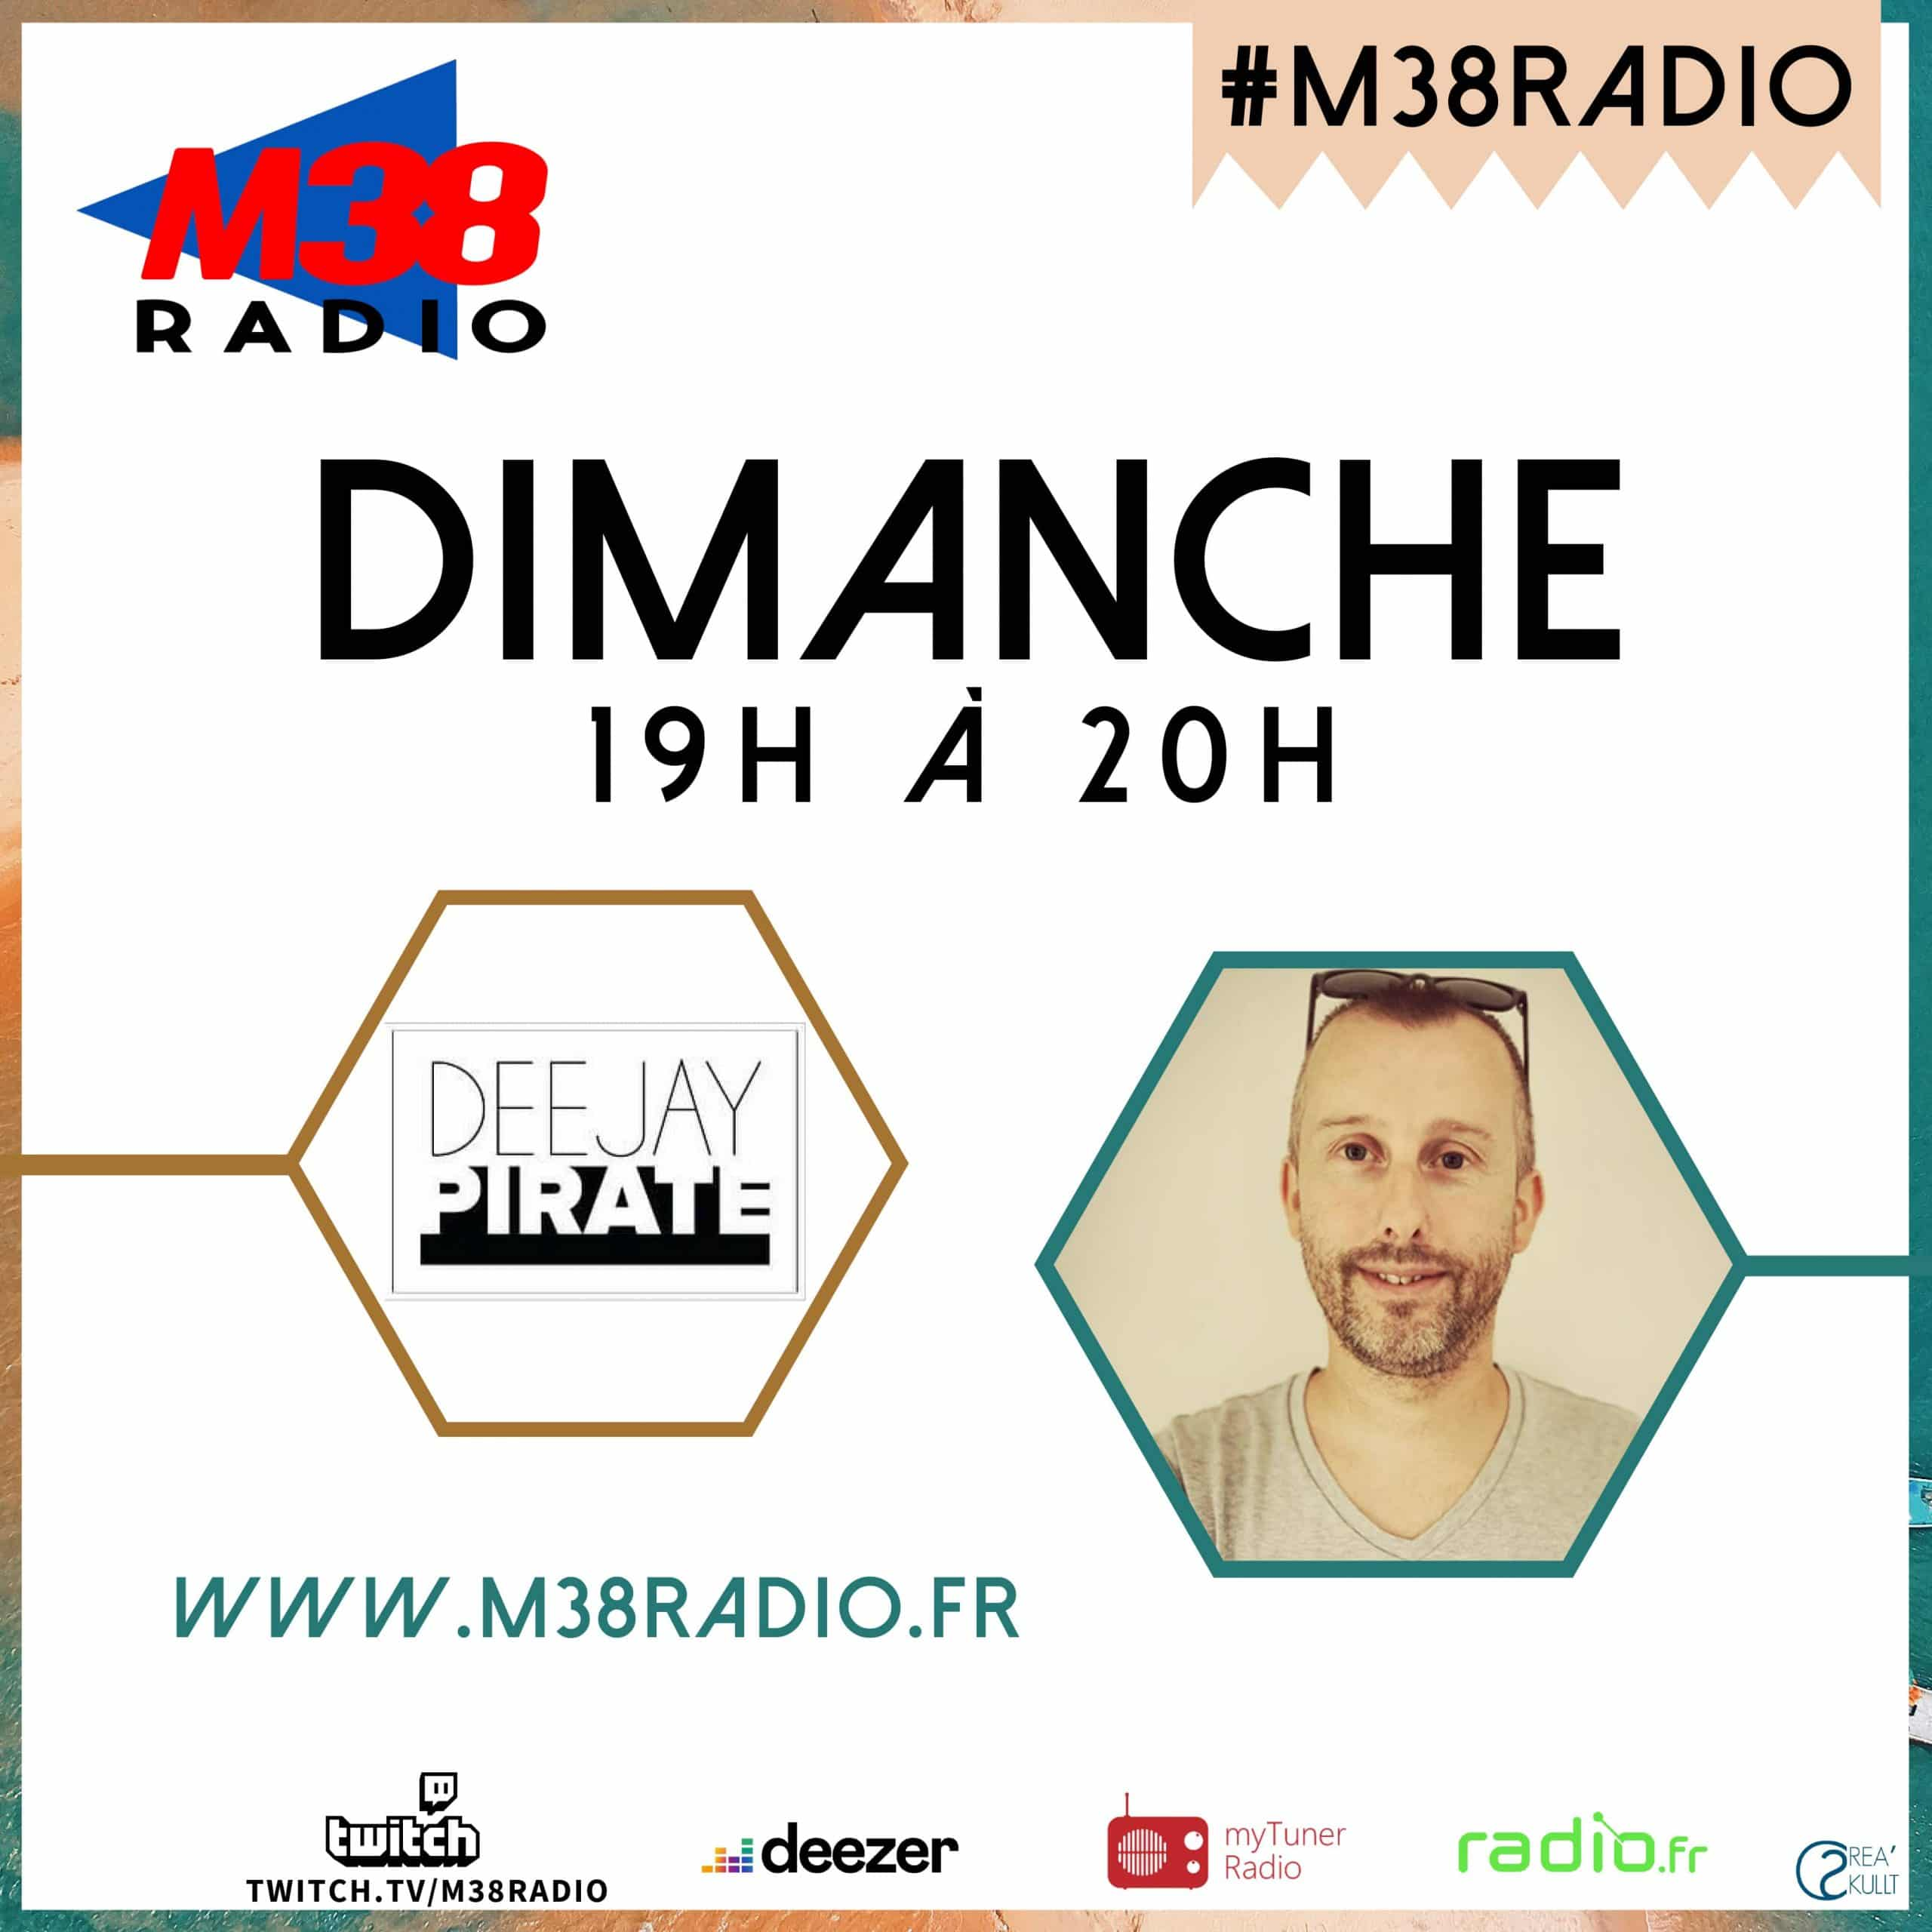 Dj pirate sur M38 RADIO